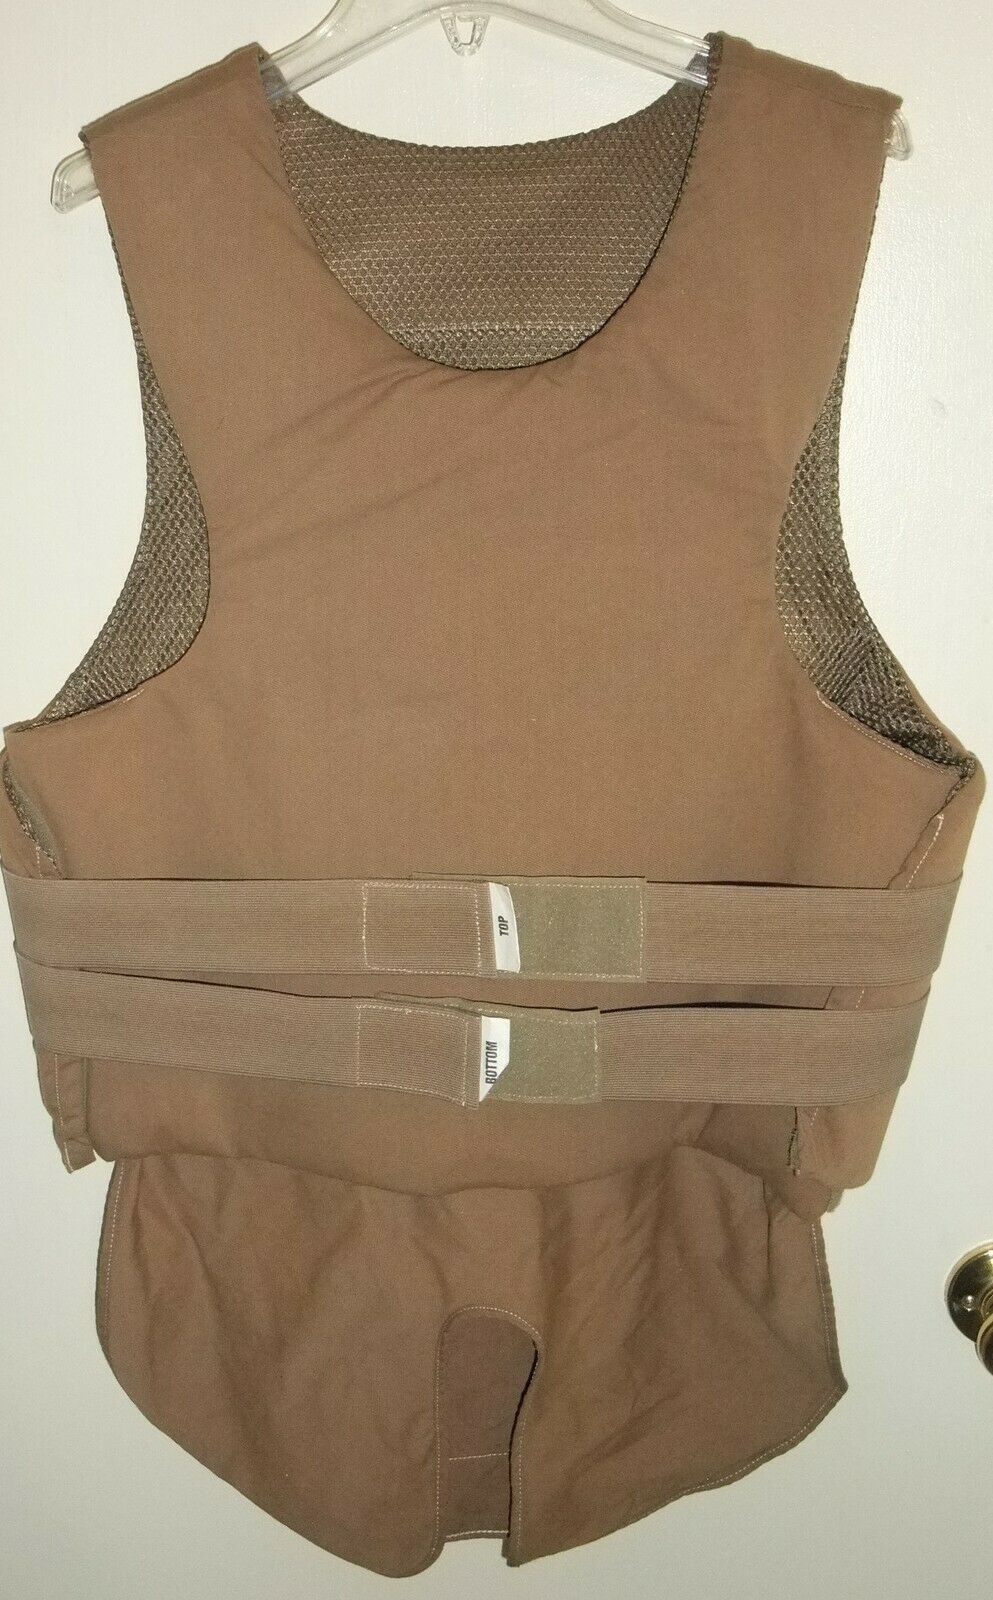 Safariland Armorwear Coyote Brown Concealable Level  II Body Armor Vest 42 X-Long  the classic style